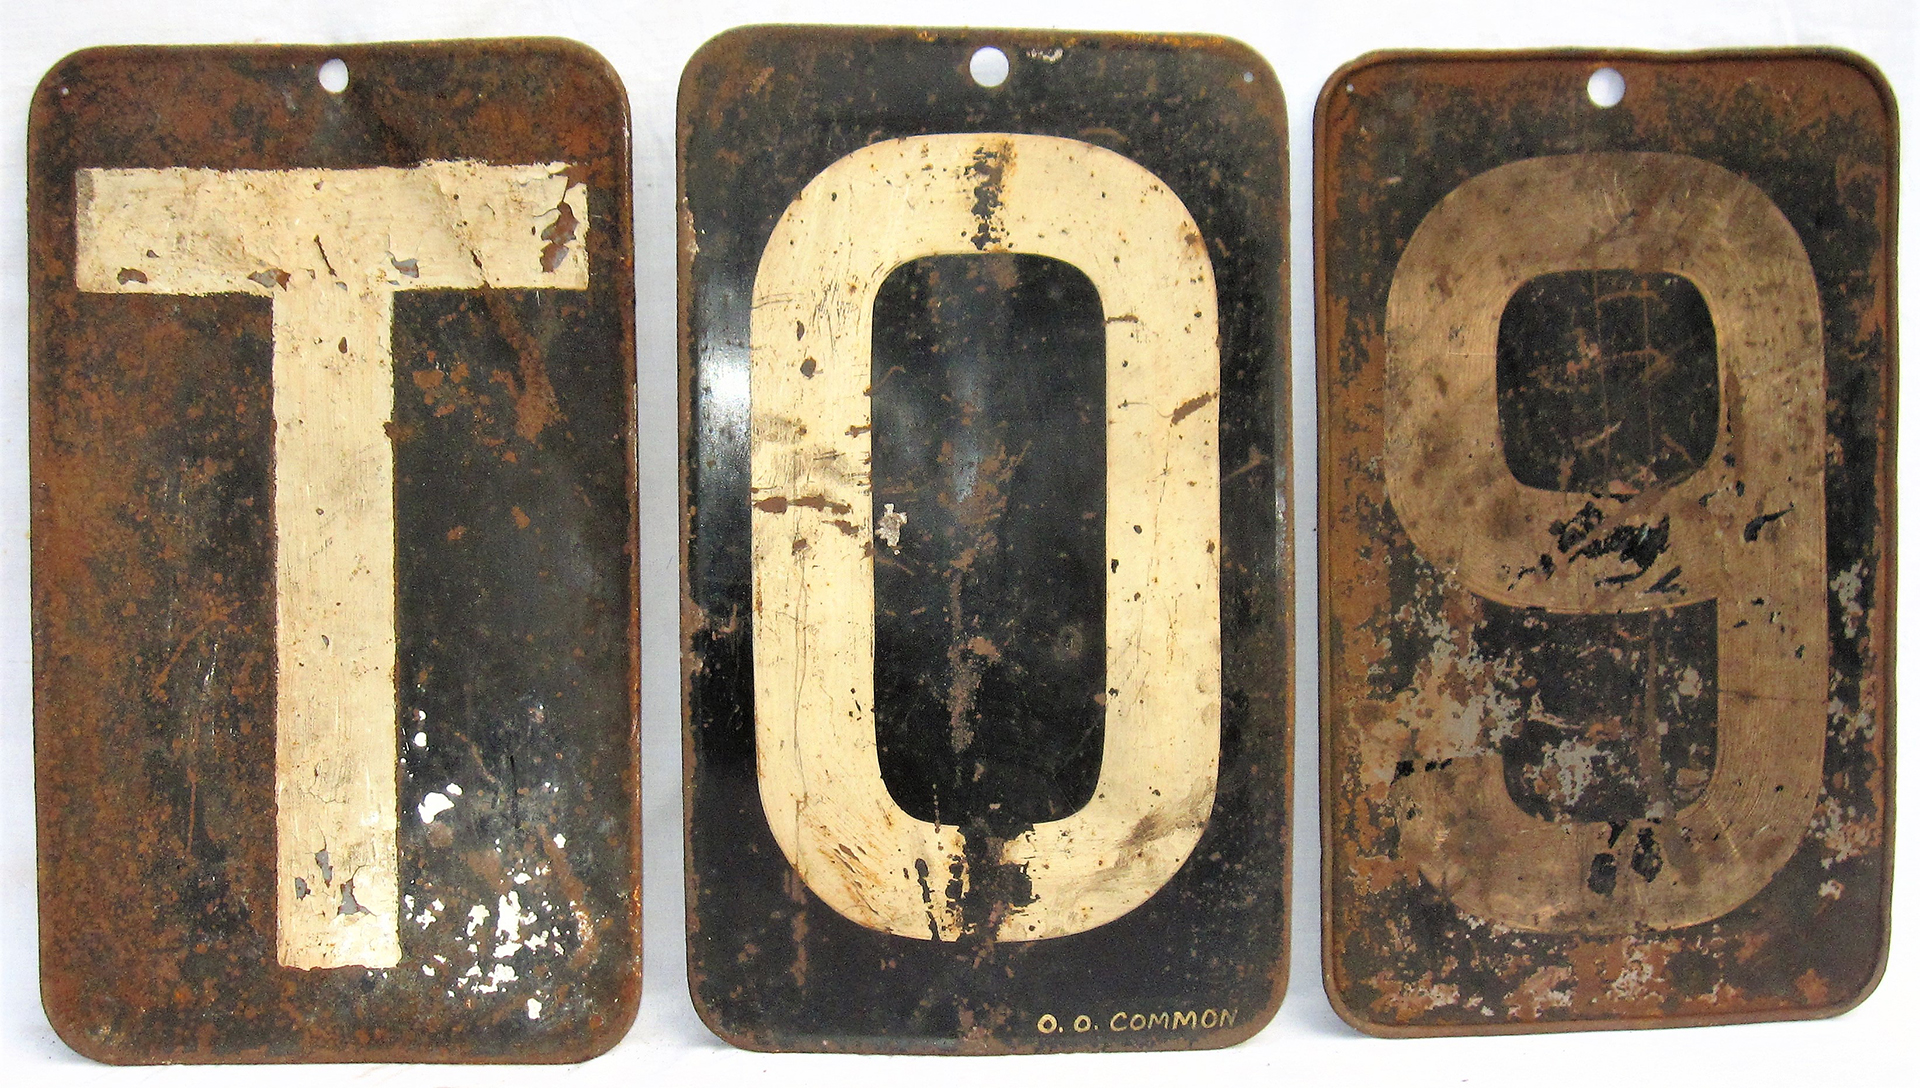 A collection of 3 x GWR/BRW Locomotive head codes. One painted O.O. Common. Rare items seldom seen